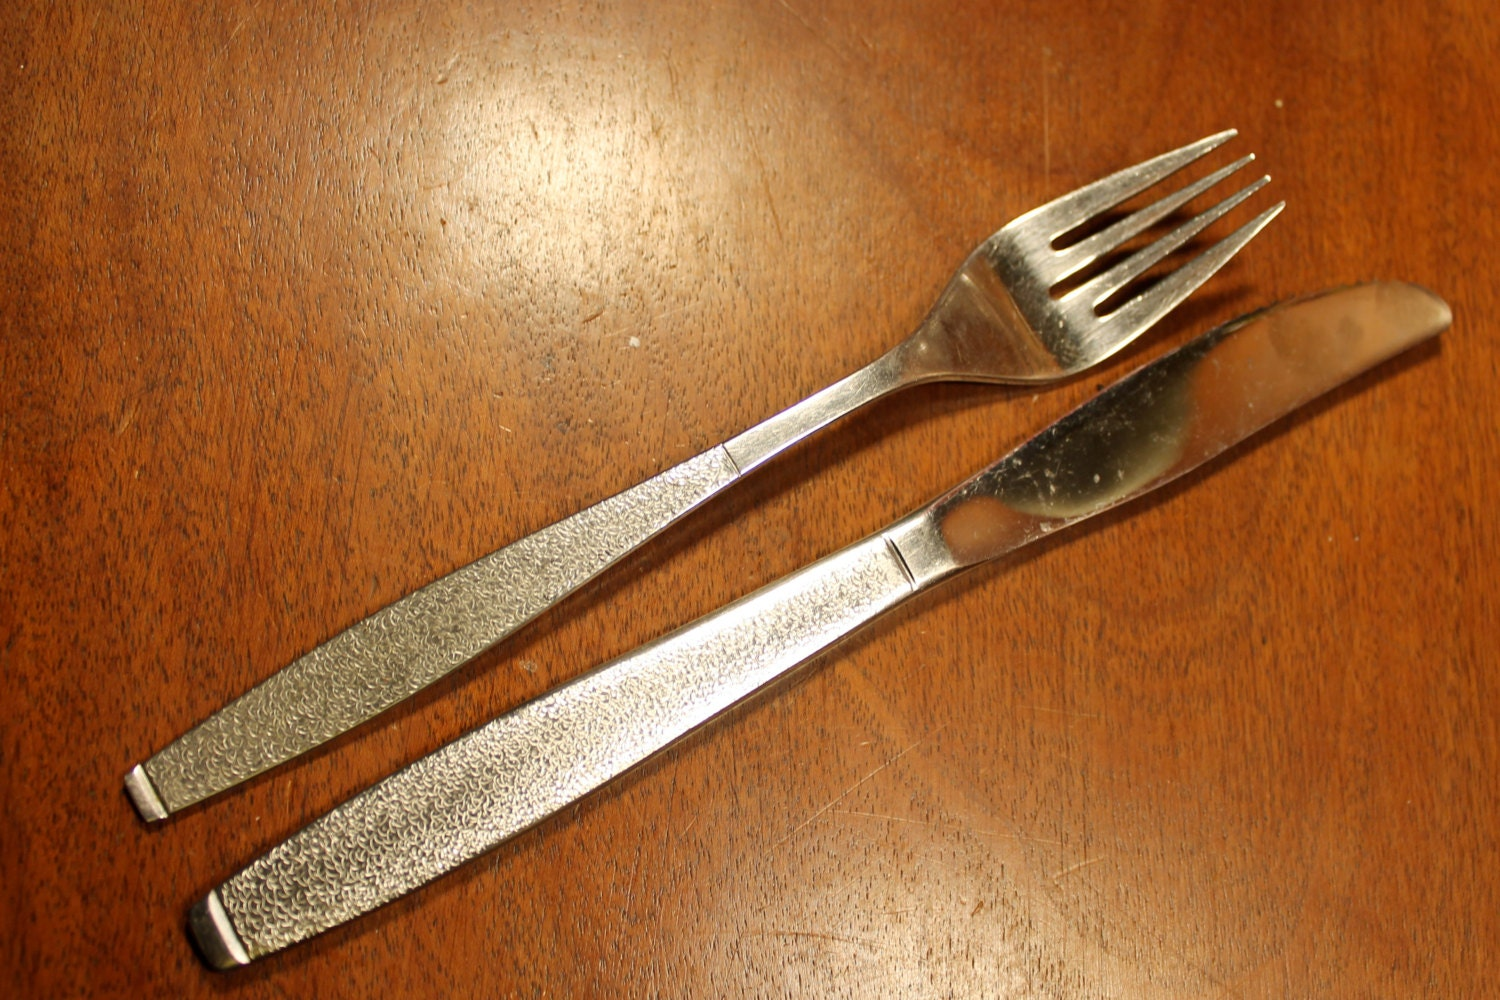 Vintage Flatware by National Stainless in Caress by AtomicHoliday